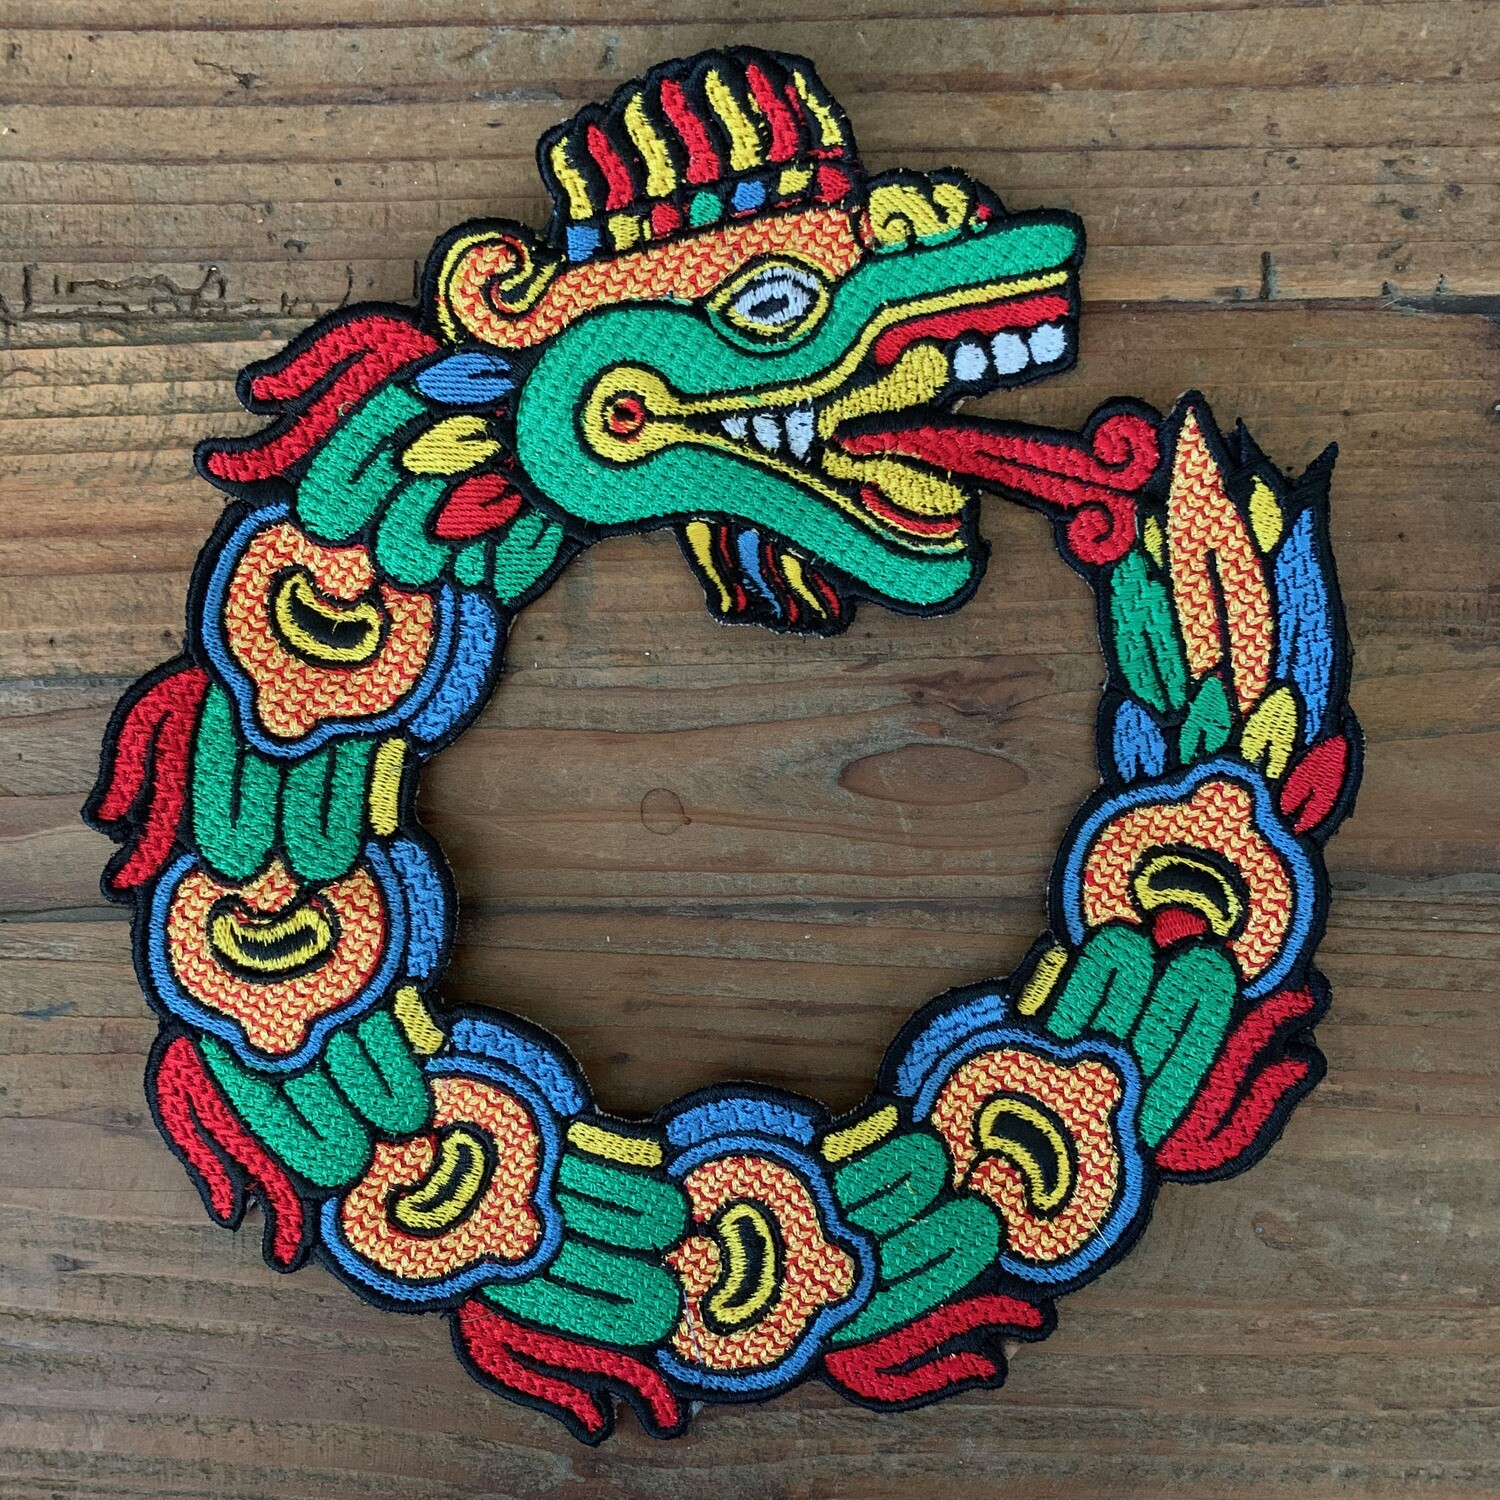 Quetzalcoatl Ouroboros Serpent Large Embroidered Patch